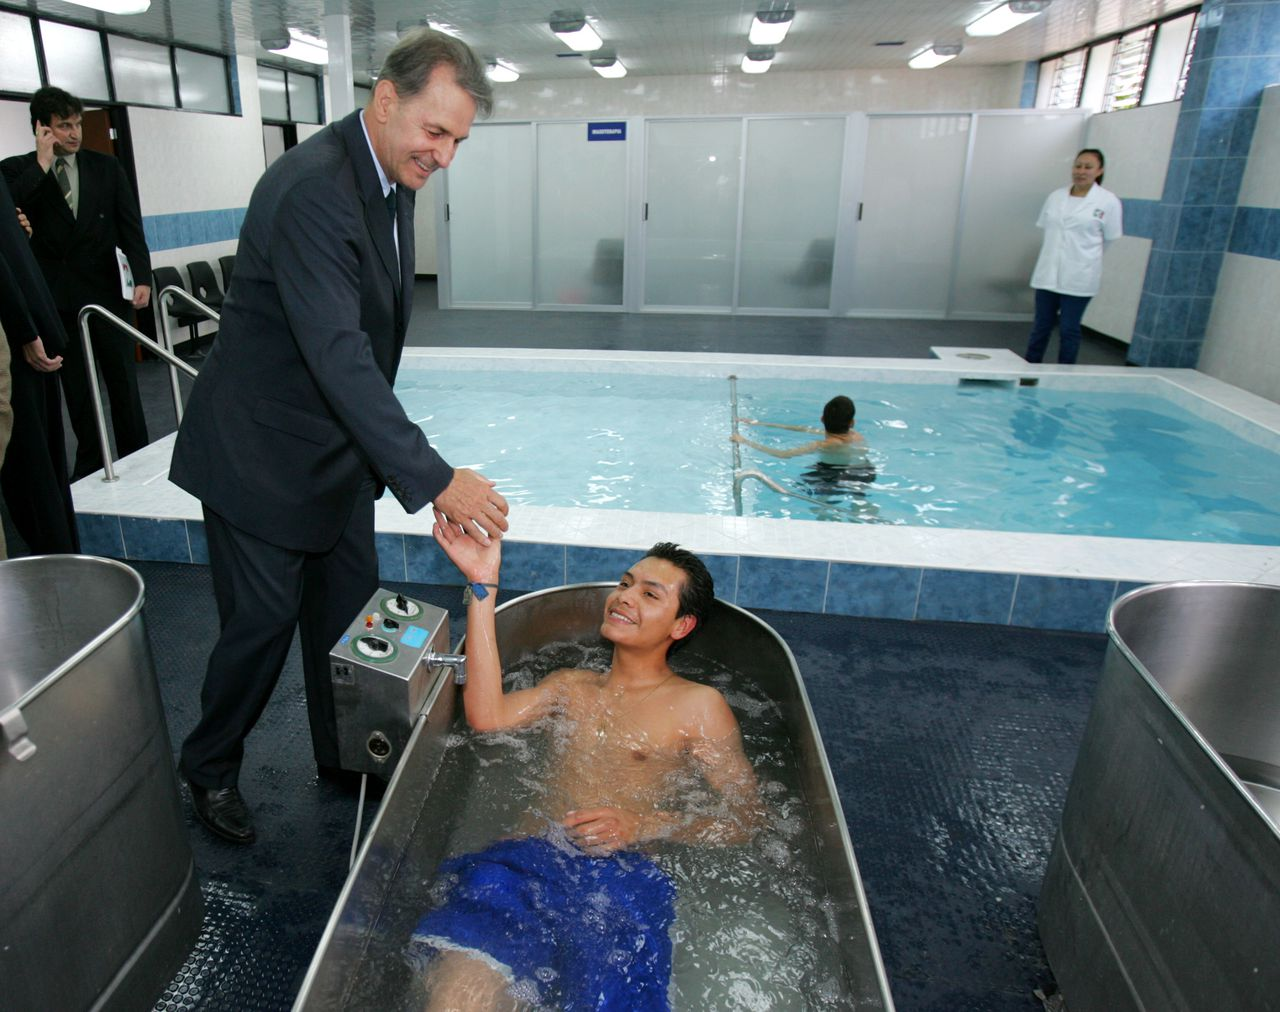 International Olympic Committee President Jacques Rogge, shake hands with Jorge Perez which is recovering in a hydro massage bath at Mexican National Olympic Committee President during a tour and inauguration of newly sports clinic on Friday Sept. 2, 2005, in Mexico City.(AP Photo/Jose Luis Magana)